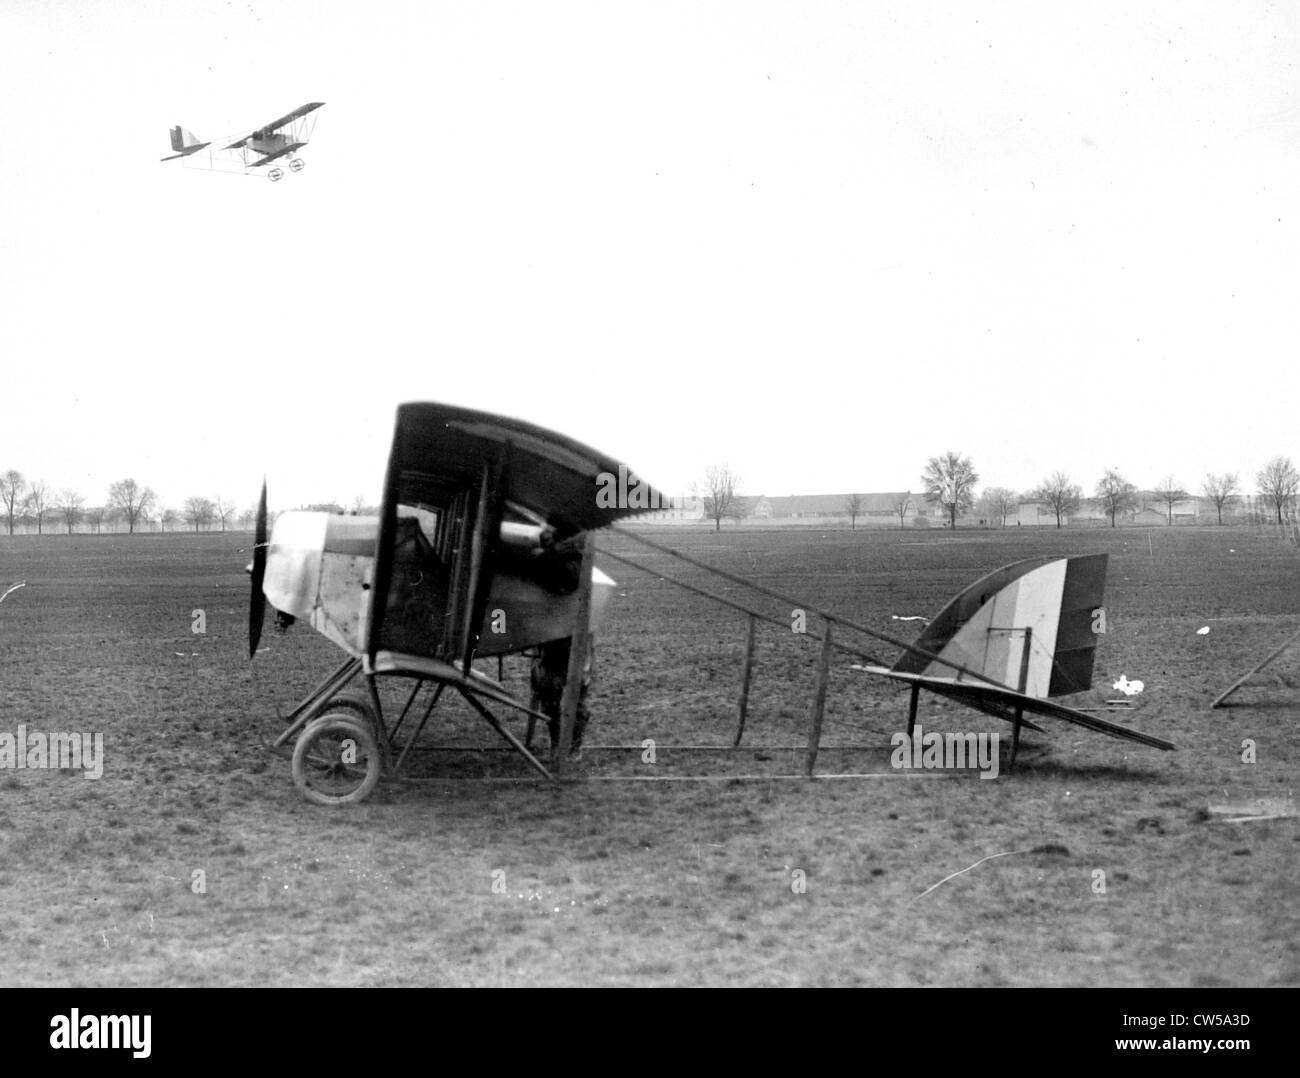 A reconnaissance flight starting out - Stock Image